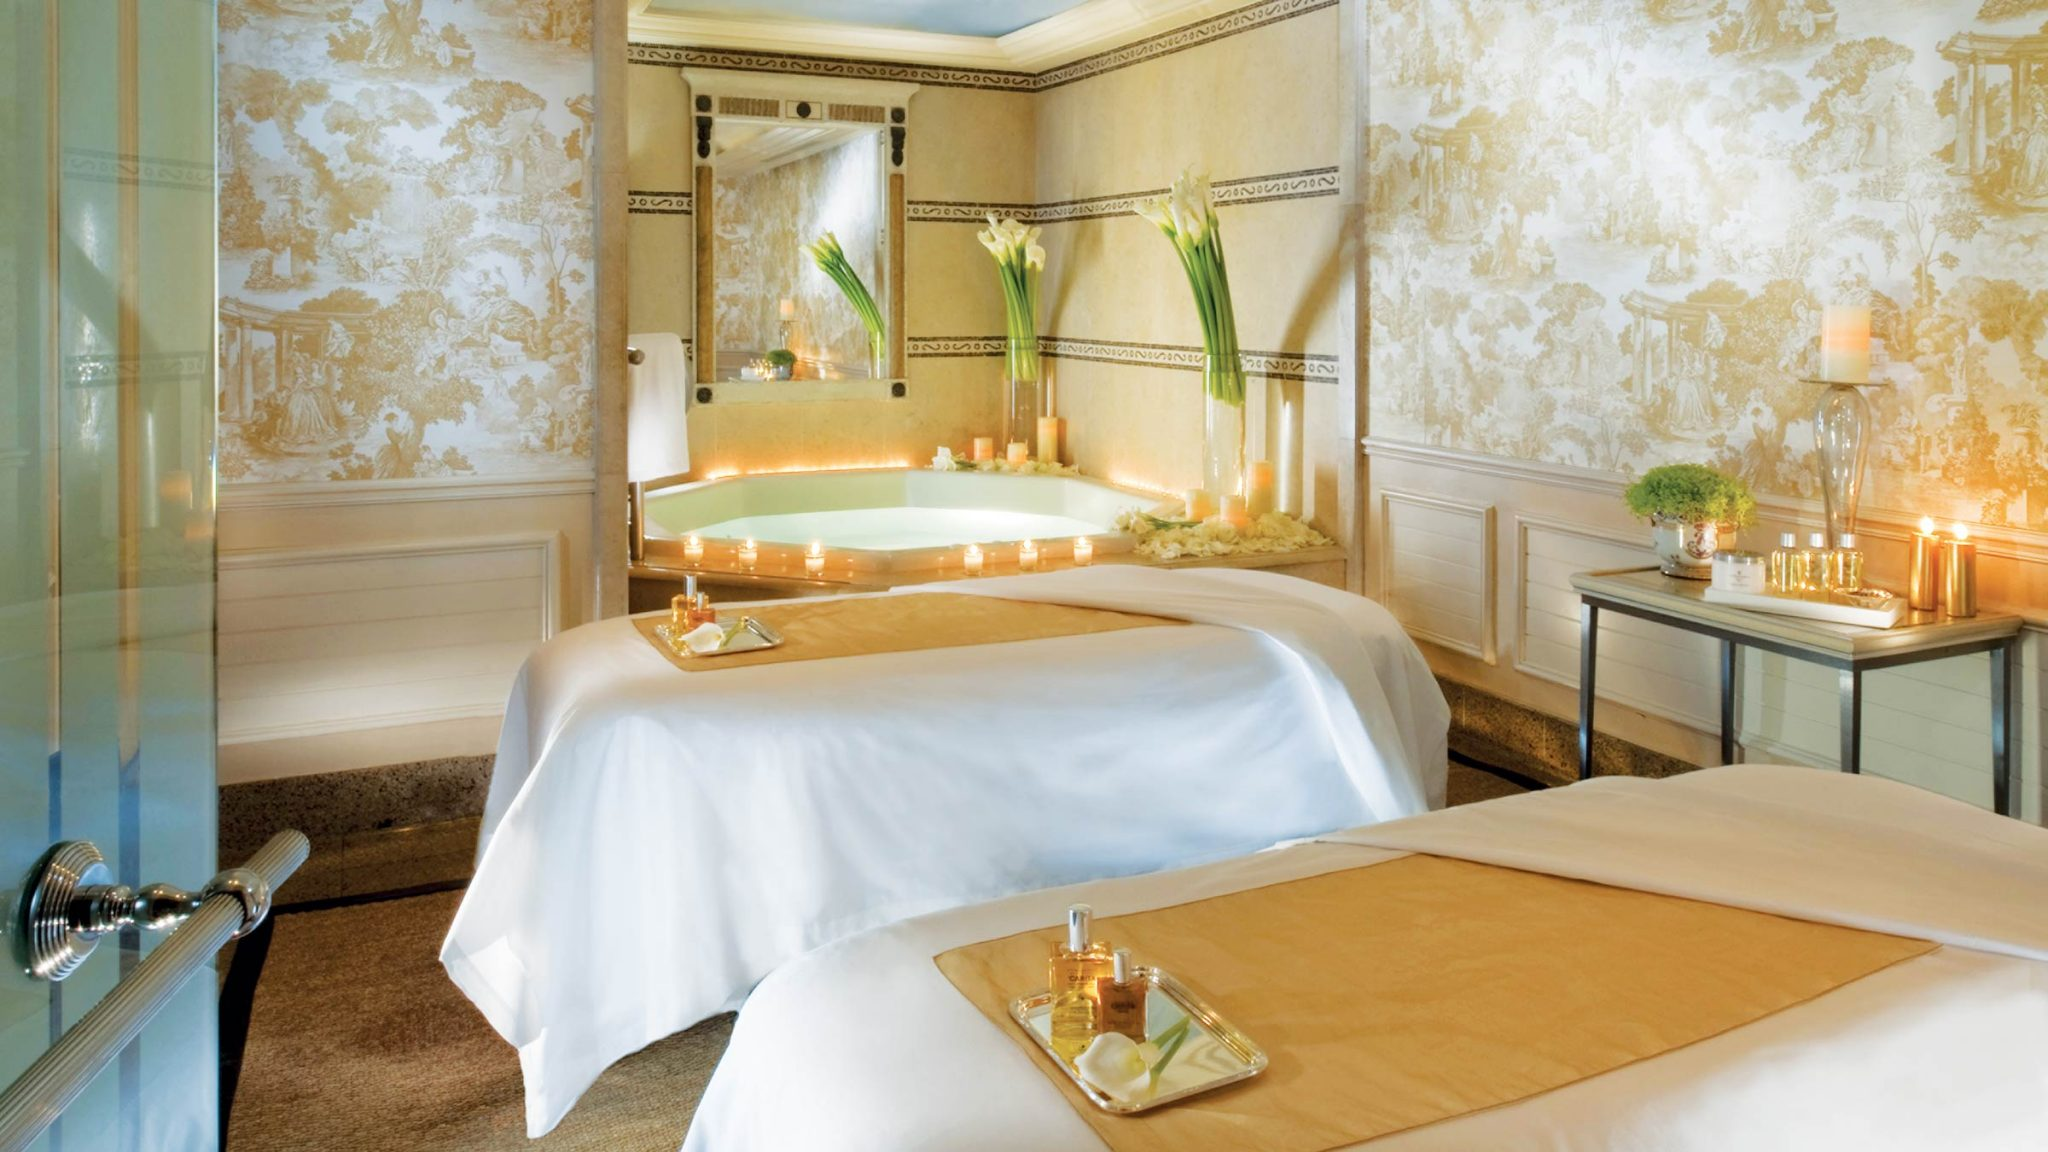 Spa treatment rooms at Four Seasons Hotel George V—Paris, France